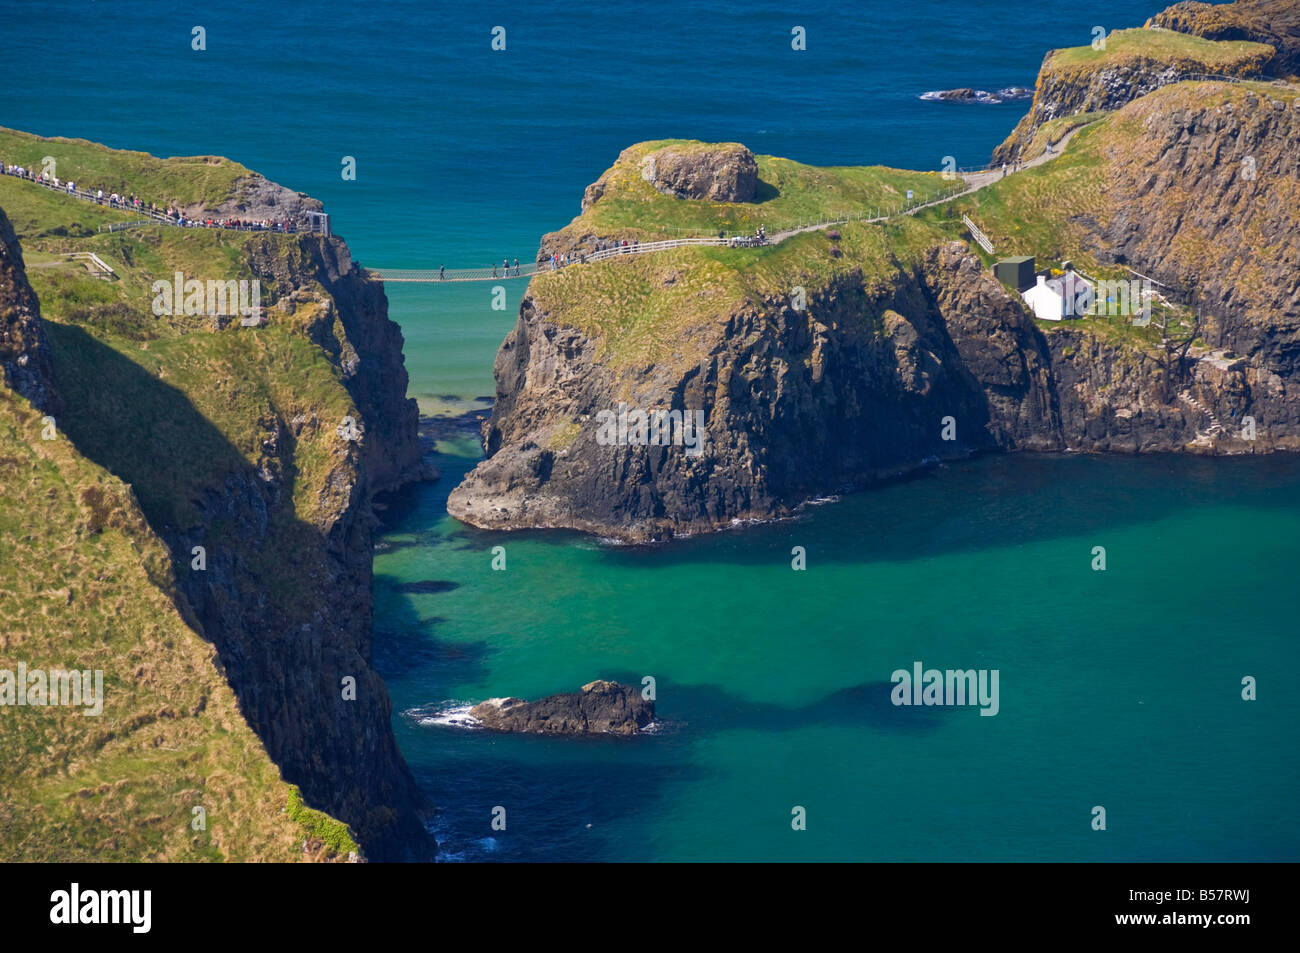 Carrick-a-Rede rope bridge to Carrick Island, Larrybane Bay, Ballintoy, Ballycastle, County Antrim, Ulster, Northern - Stock Image